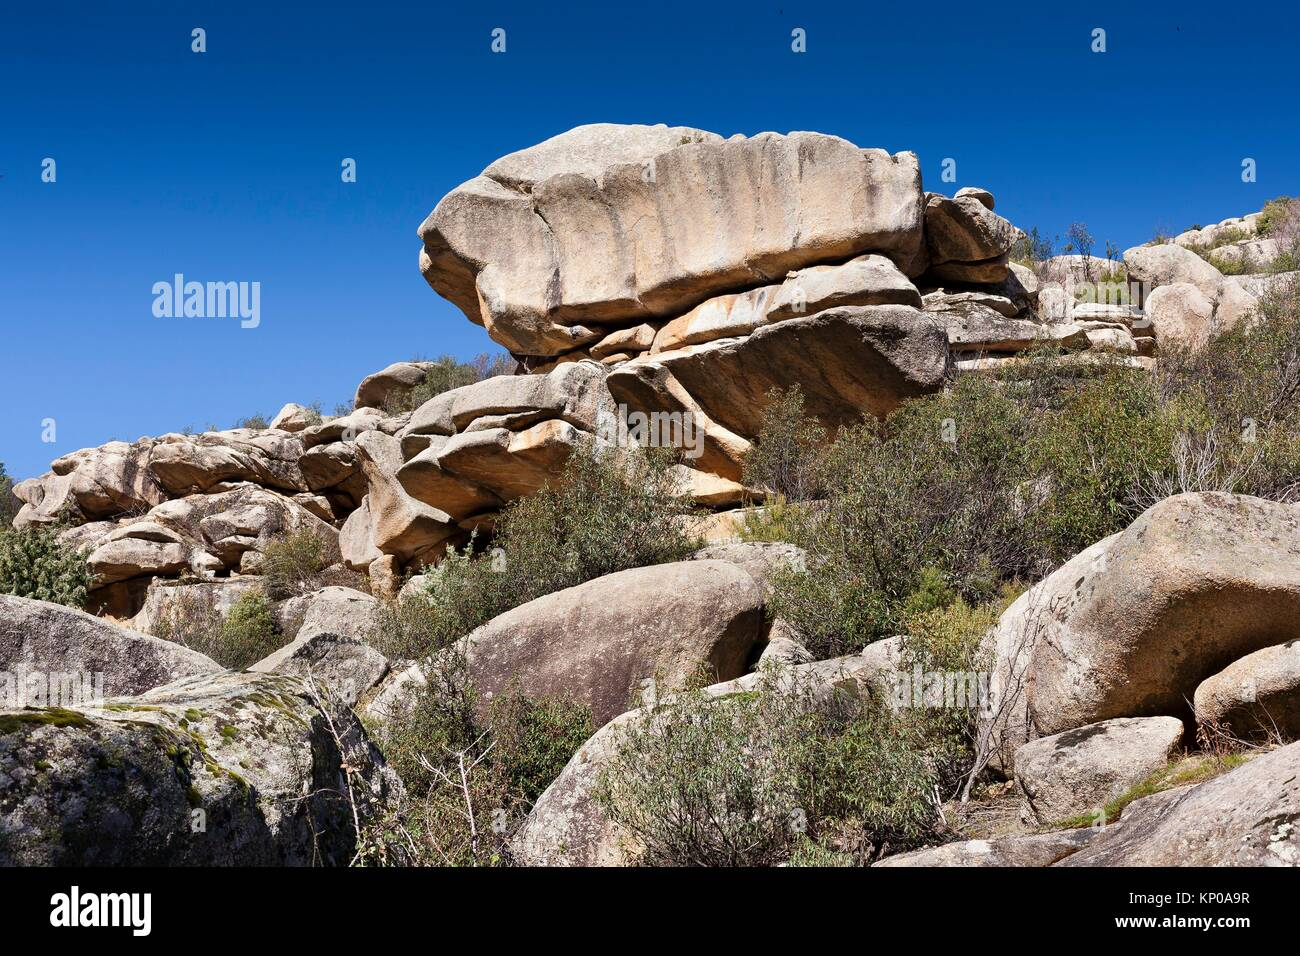 The Tranco cliffs in the Pedriza. Regional Park del Ato Manzanares. Manzanares el Real. Madrid. Spain. Europe. Stock Photo